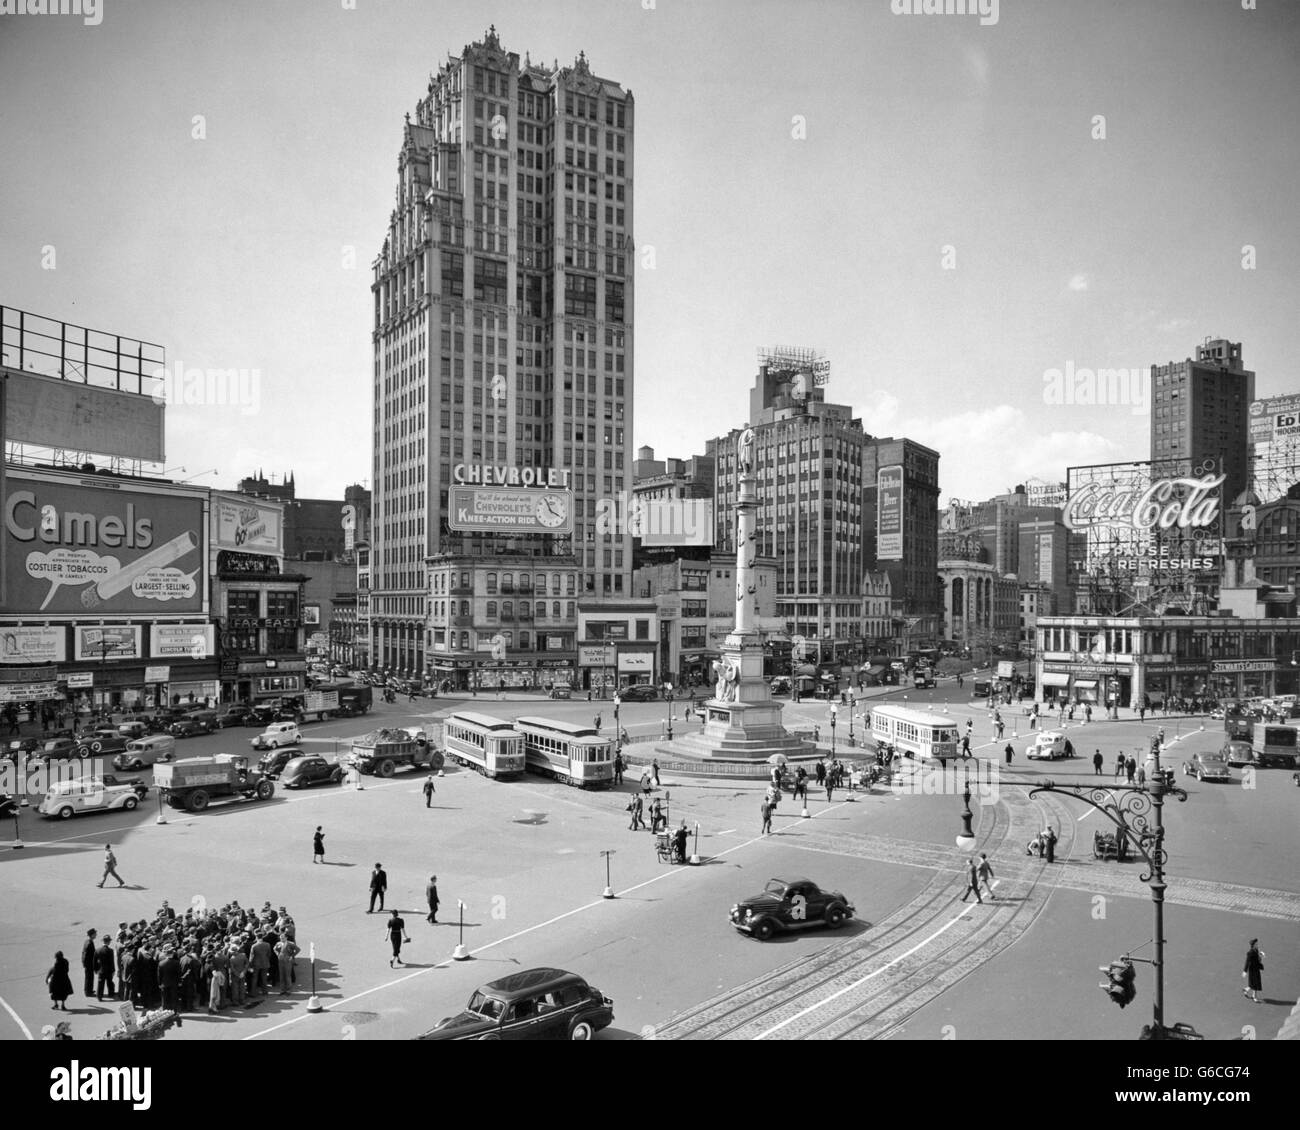 1930s COLUMBUS CIRCLE WITH COCA COLA SIGN AND TROLLEY CARS NEW YORK CITY USA - Stock Image